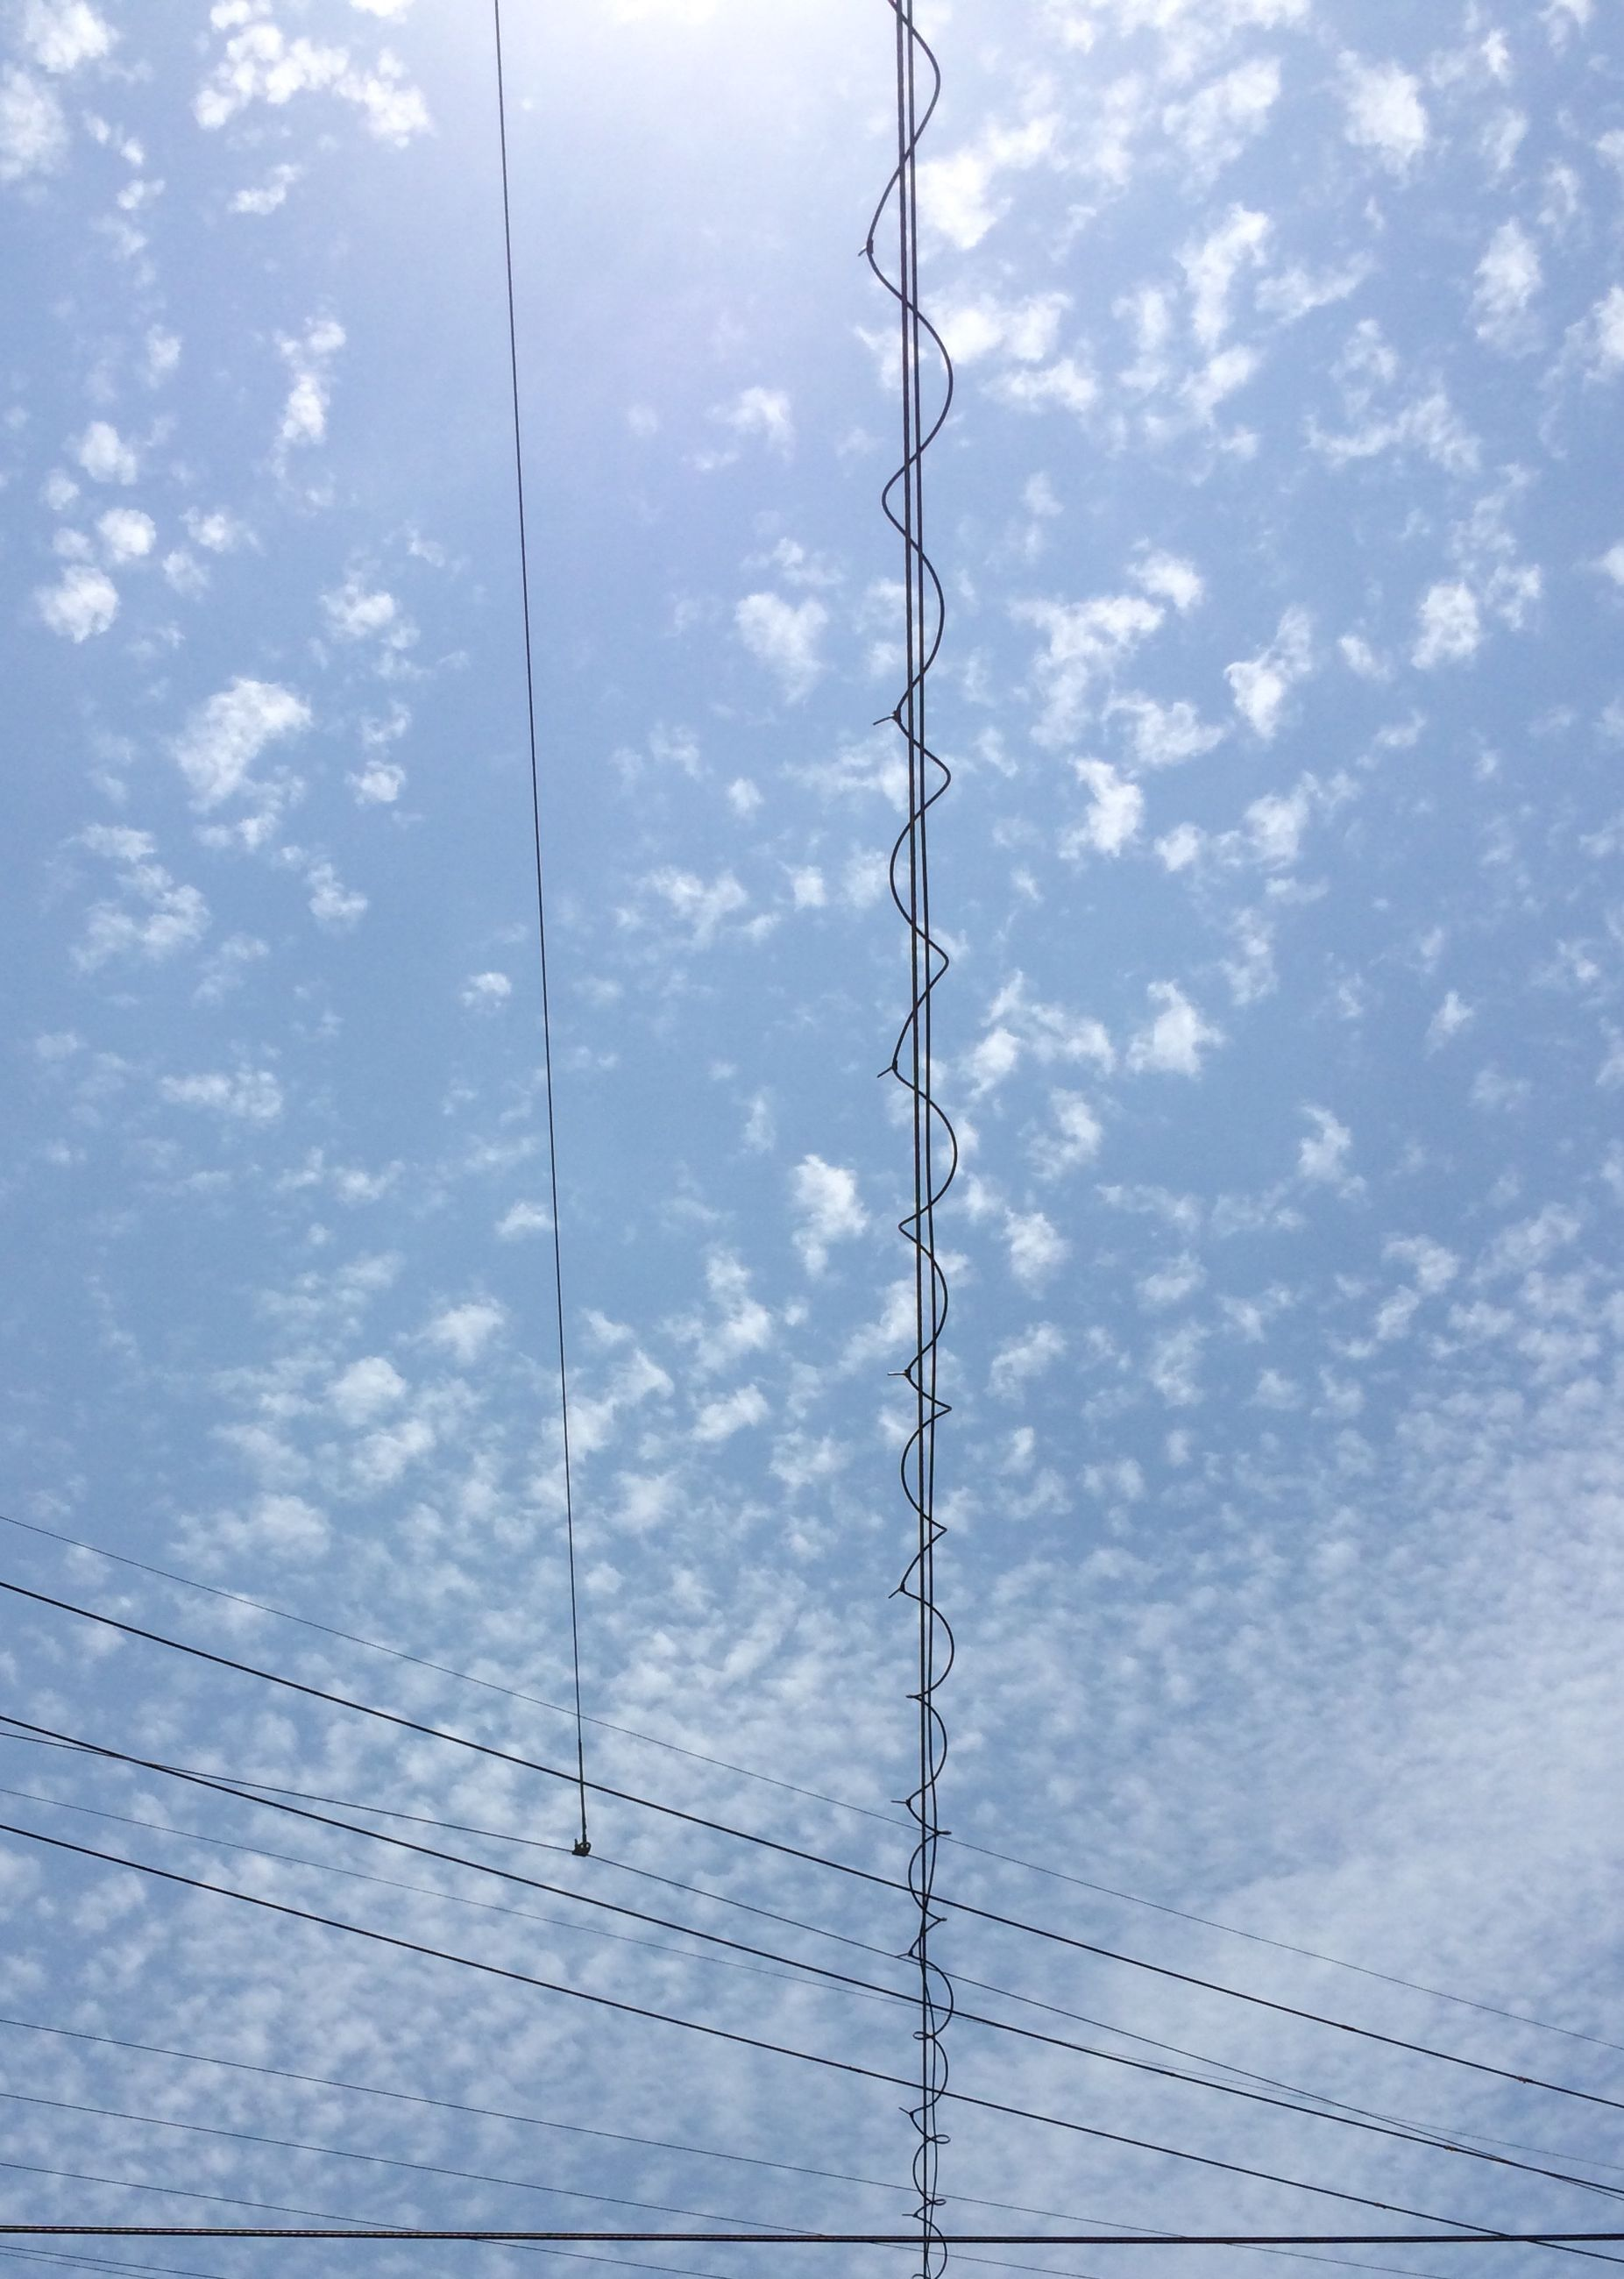 sky, low angle view, cloud - sky, cloudy, cloud, power line, day, cable, built structure, weather, electricity, street light, no people, outdoors, architecture, full frame, pattern, nature, backgrounds, connection